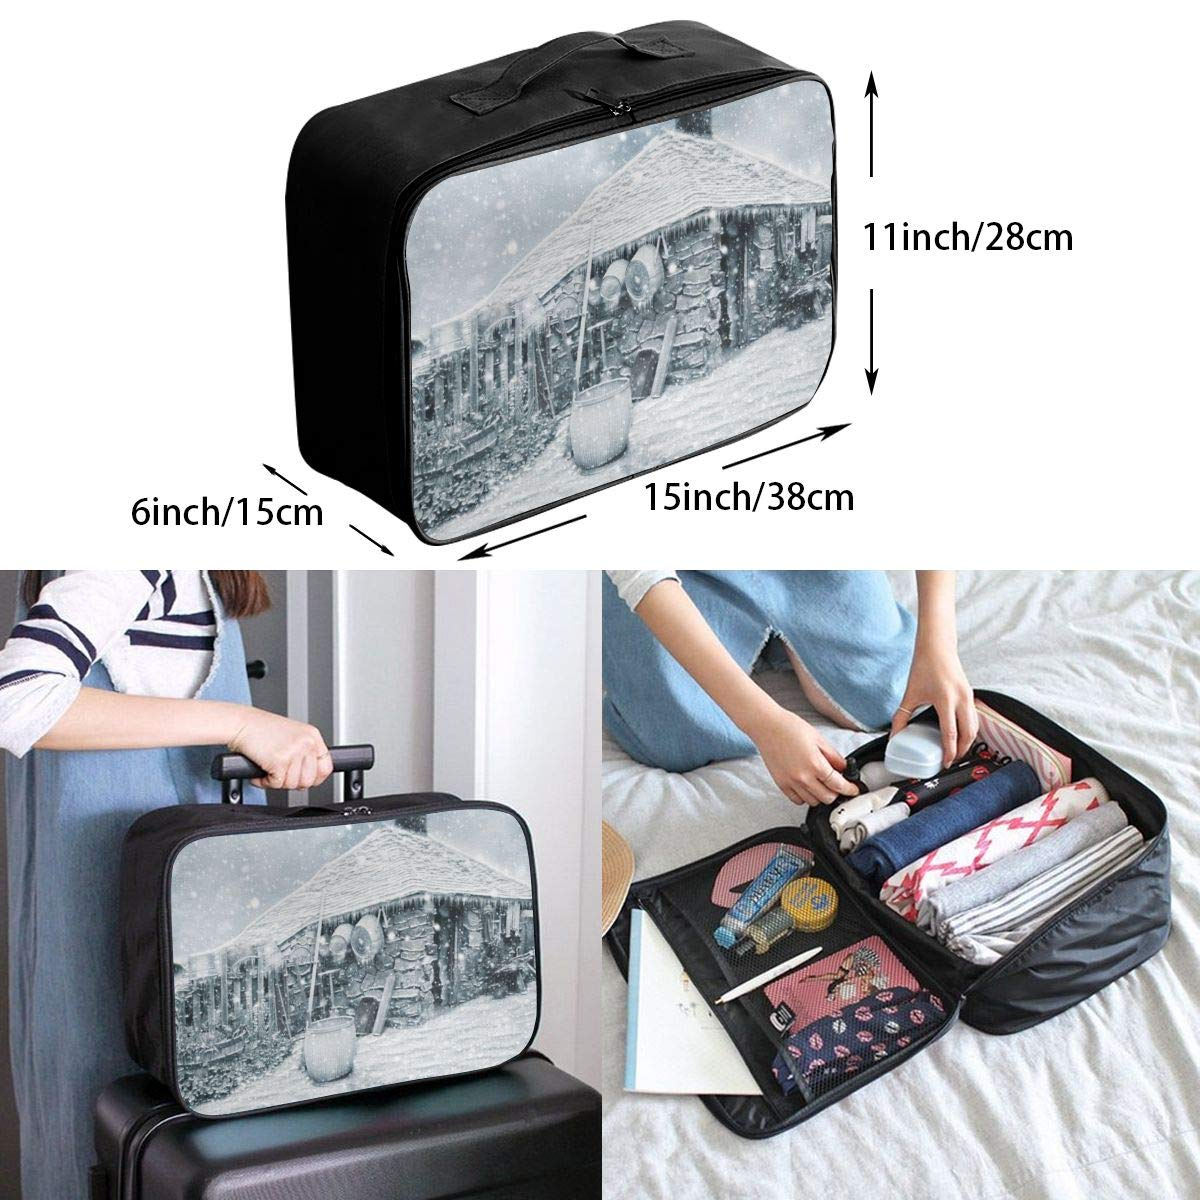 Winter House Snow Travel Lightweight Waterproof Foldable Storage Carry Luggage Large Capacity Portable Luggage Bag Duffel Bag